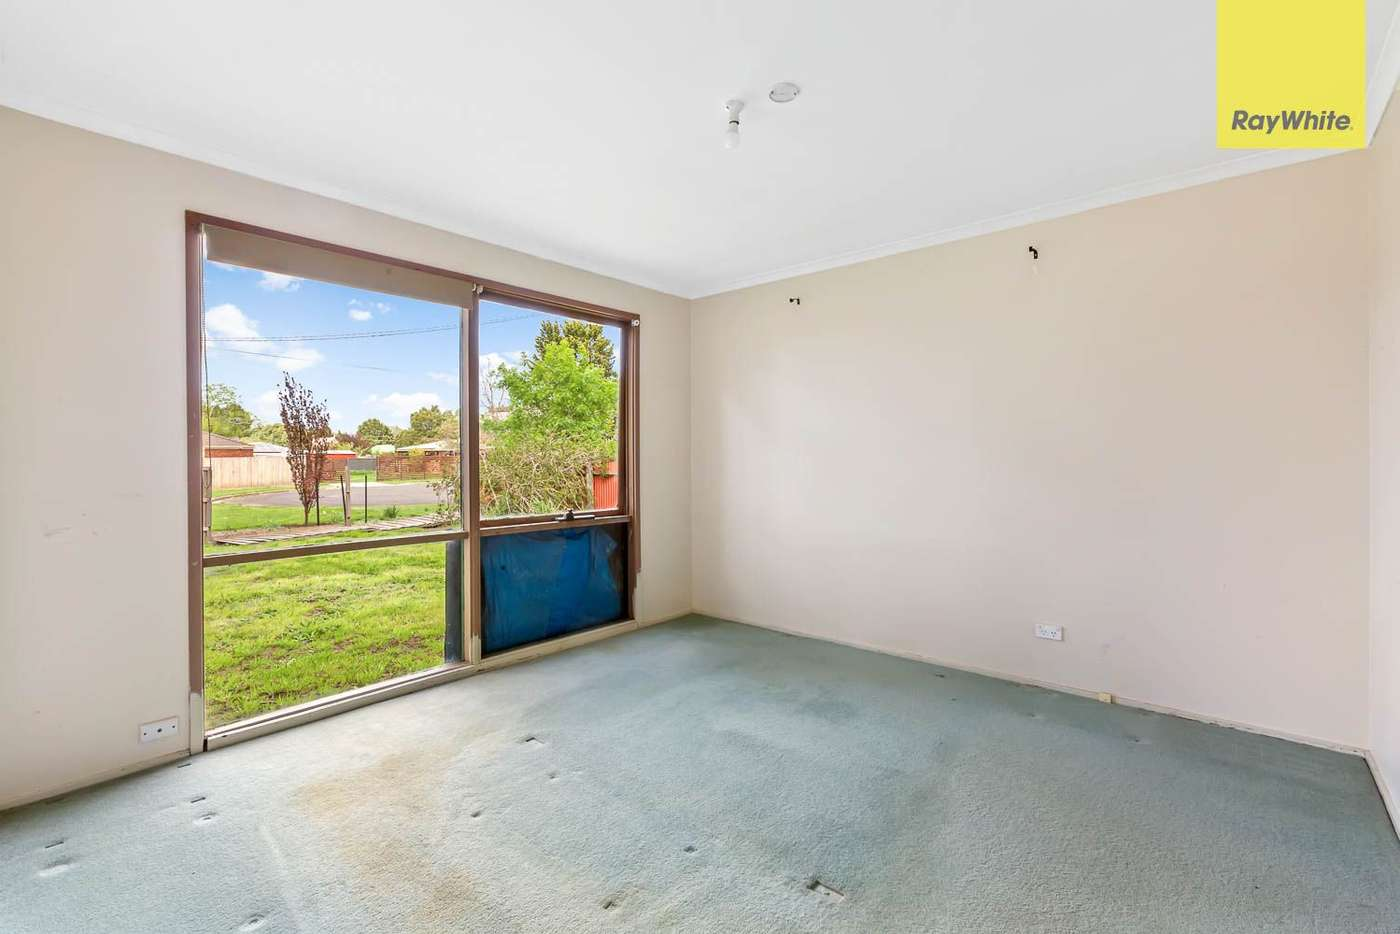 Fifth view of Homely house listing, 27 Jopling Street, Ballan VIC 3342